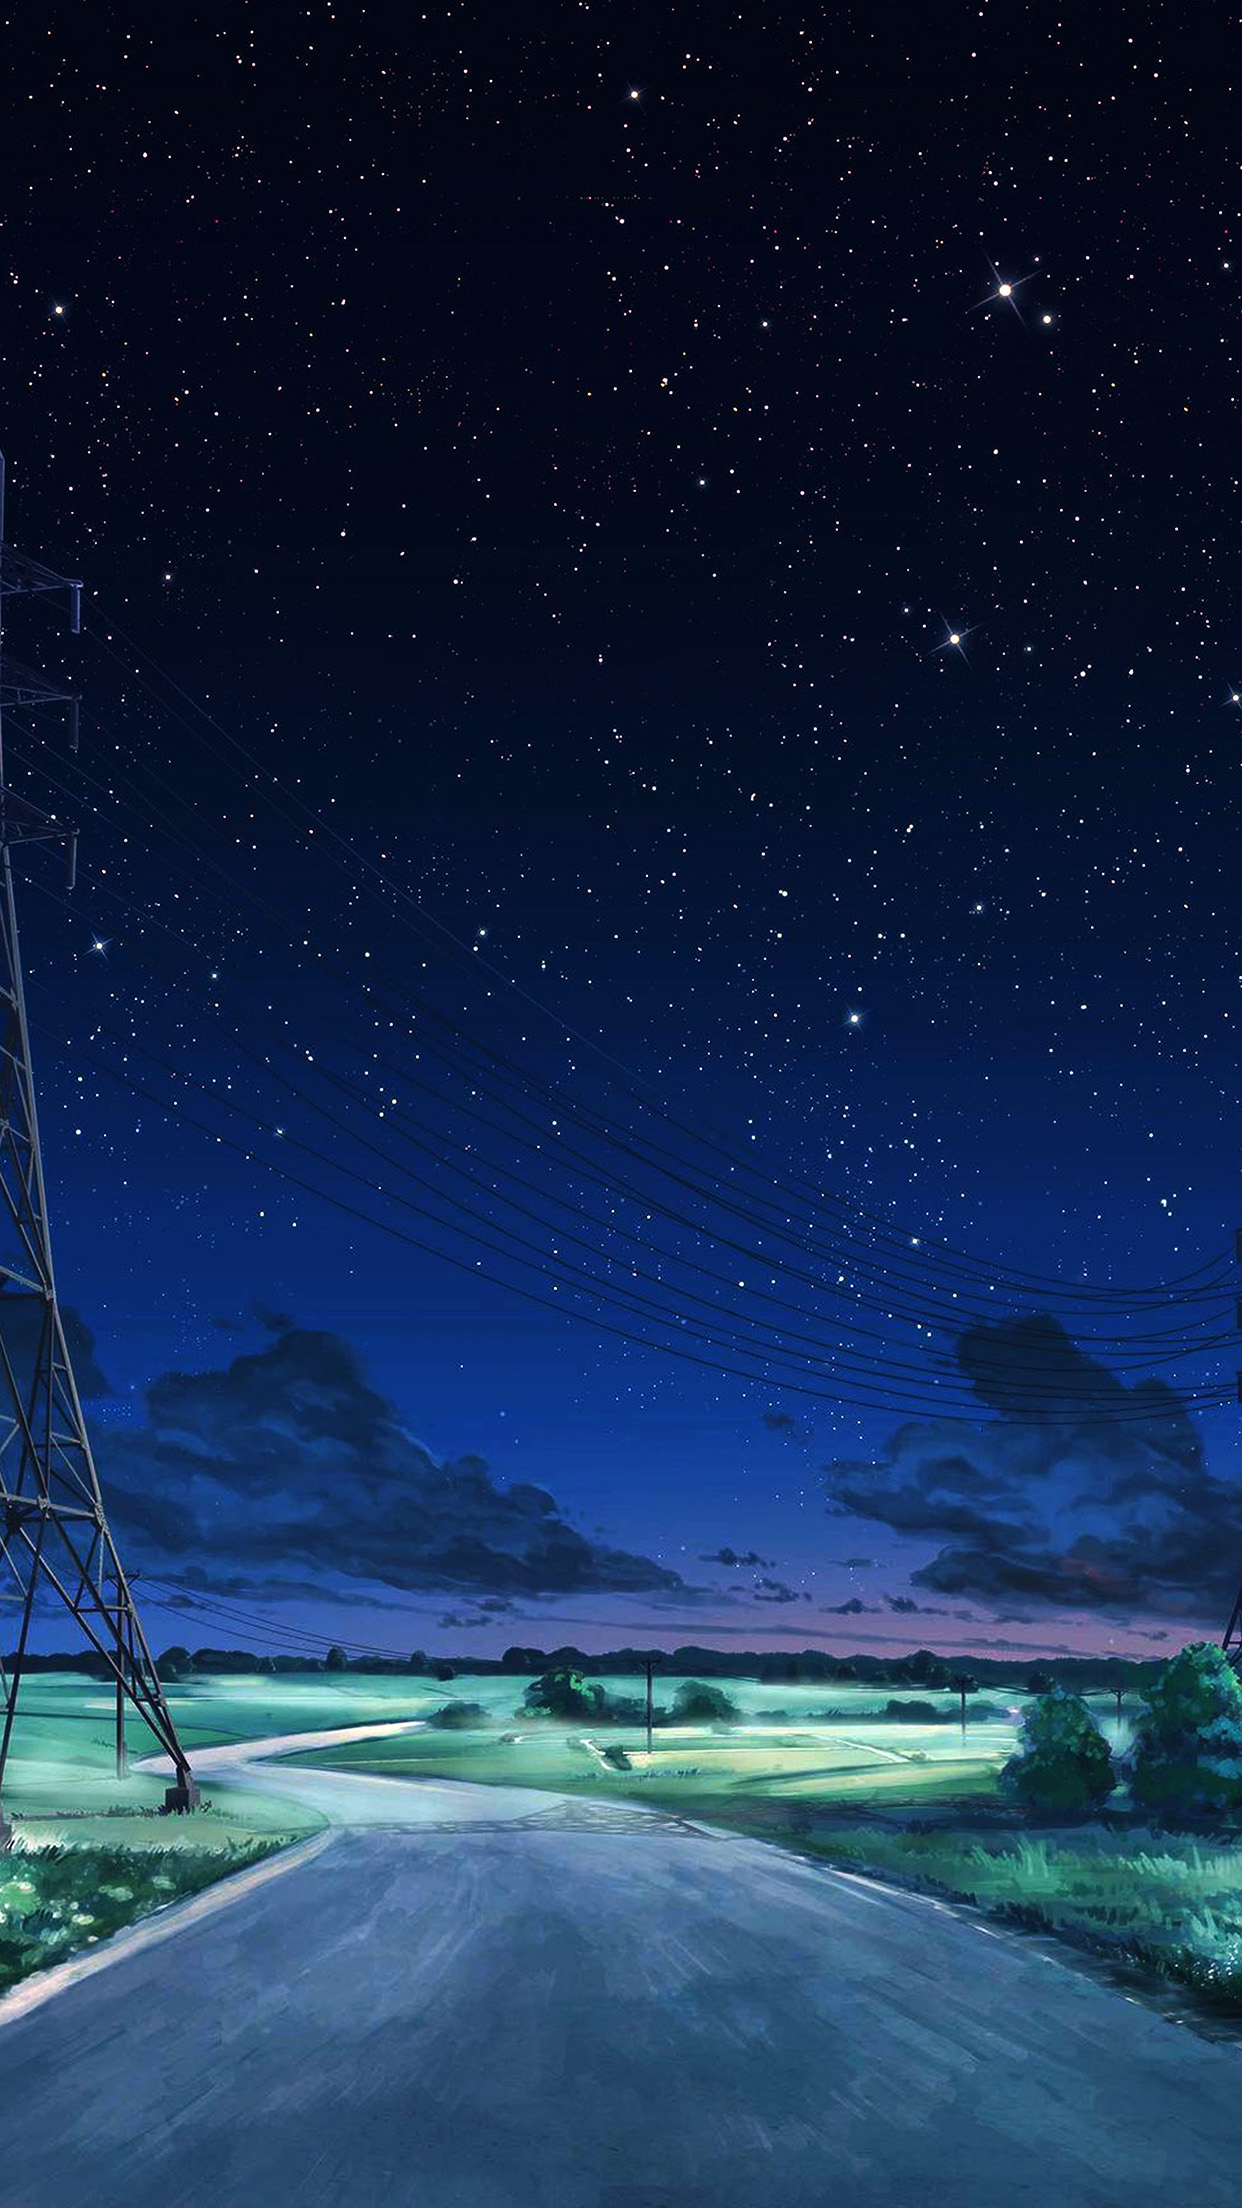 Cute Animated Wallpapers Hd Aw16 Arseniy Chebynkin Night Sky Star Blue Illustration